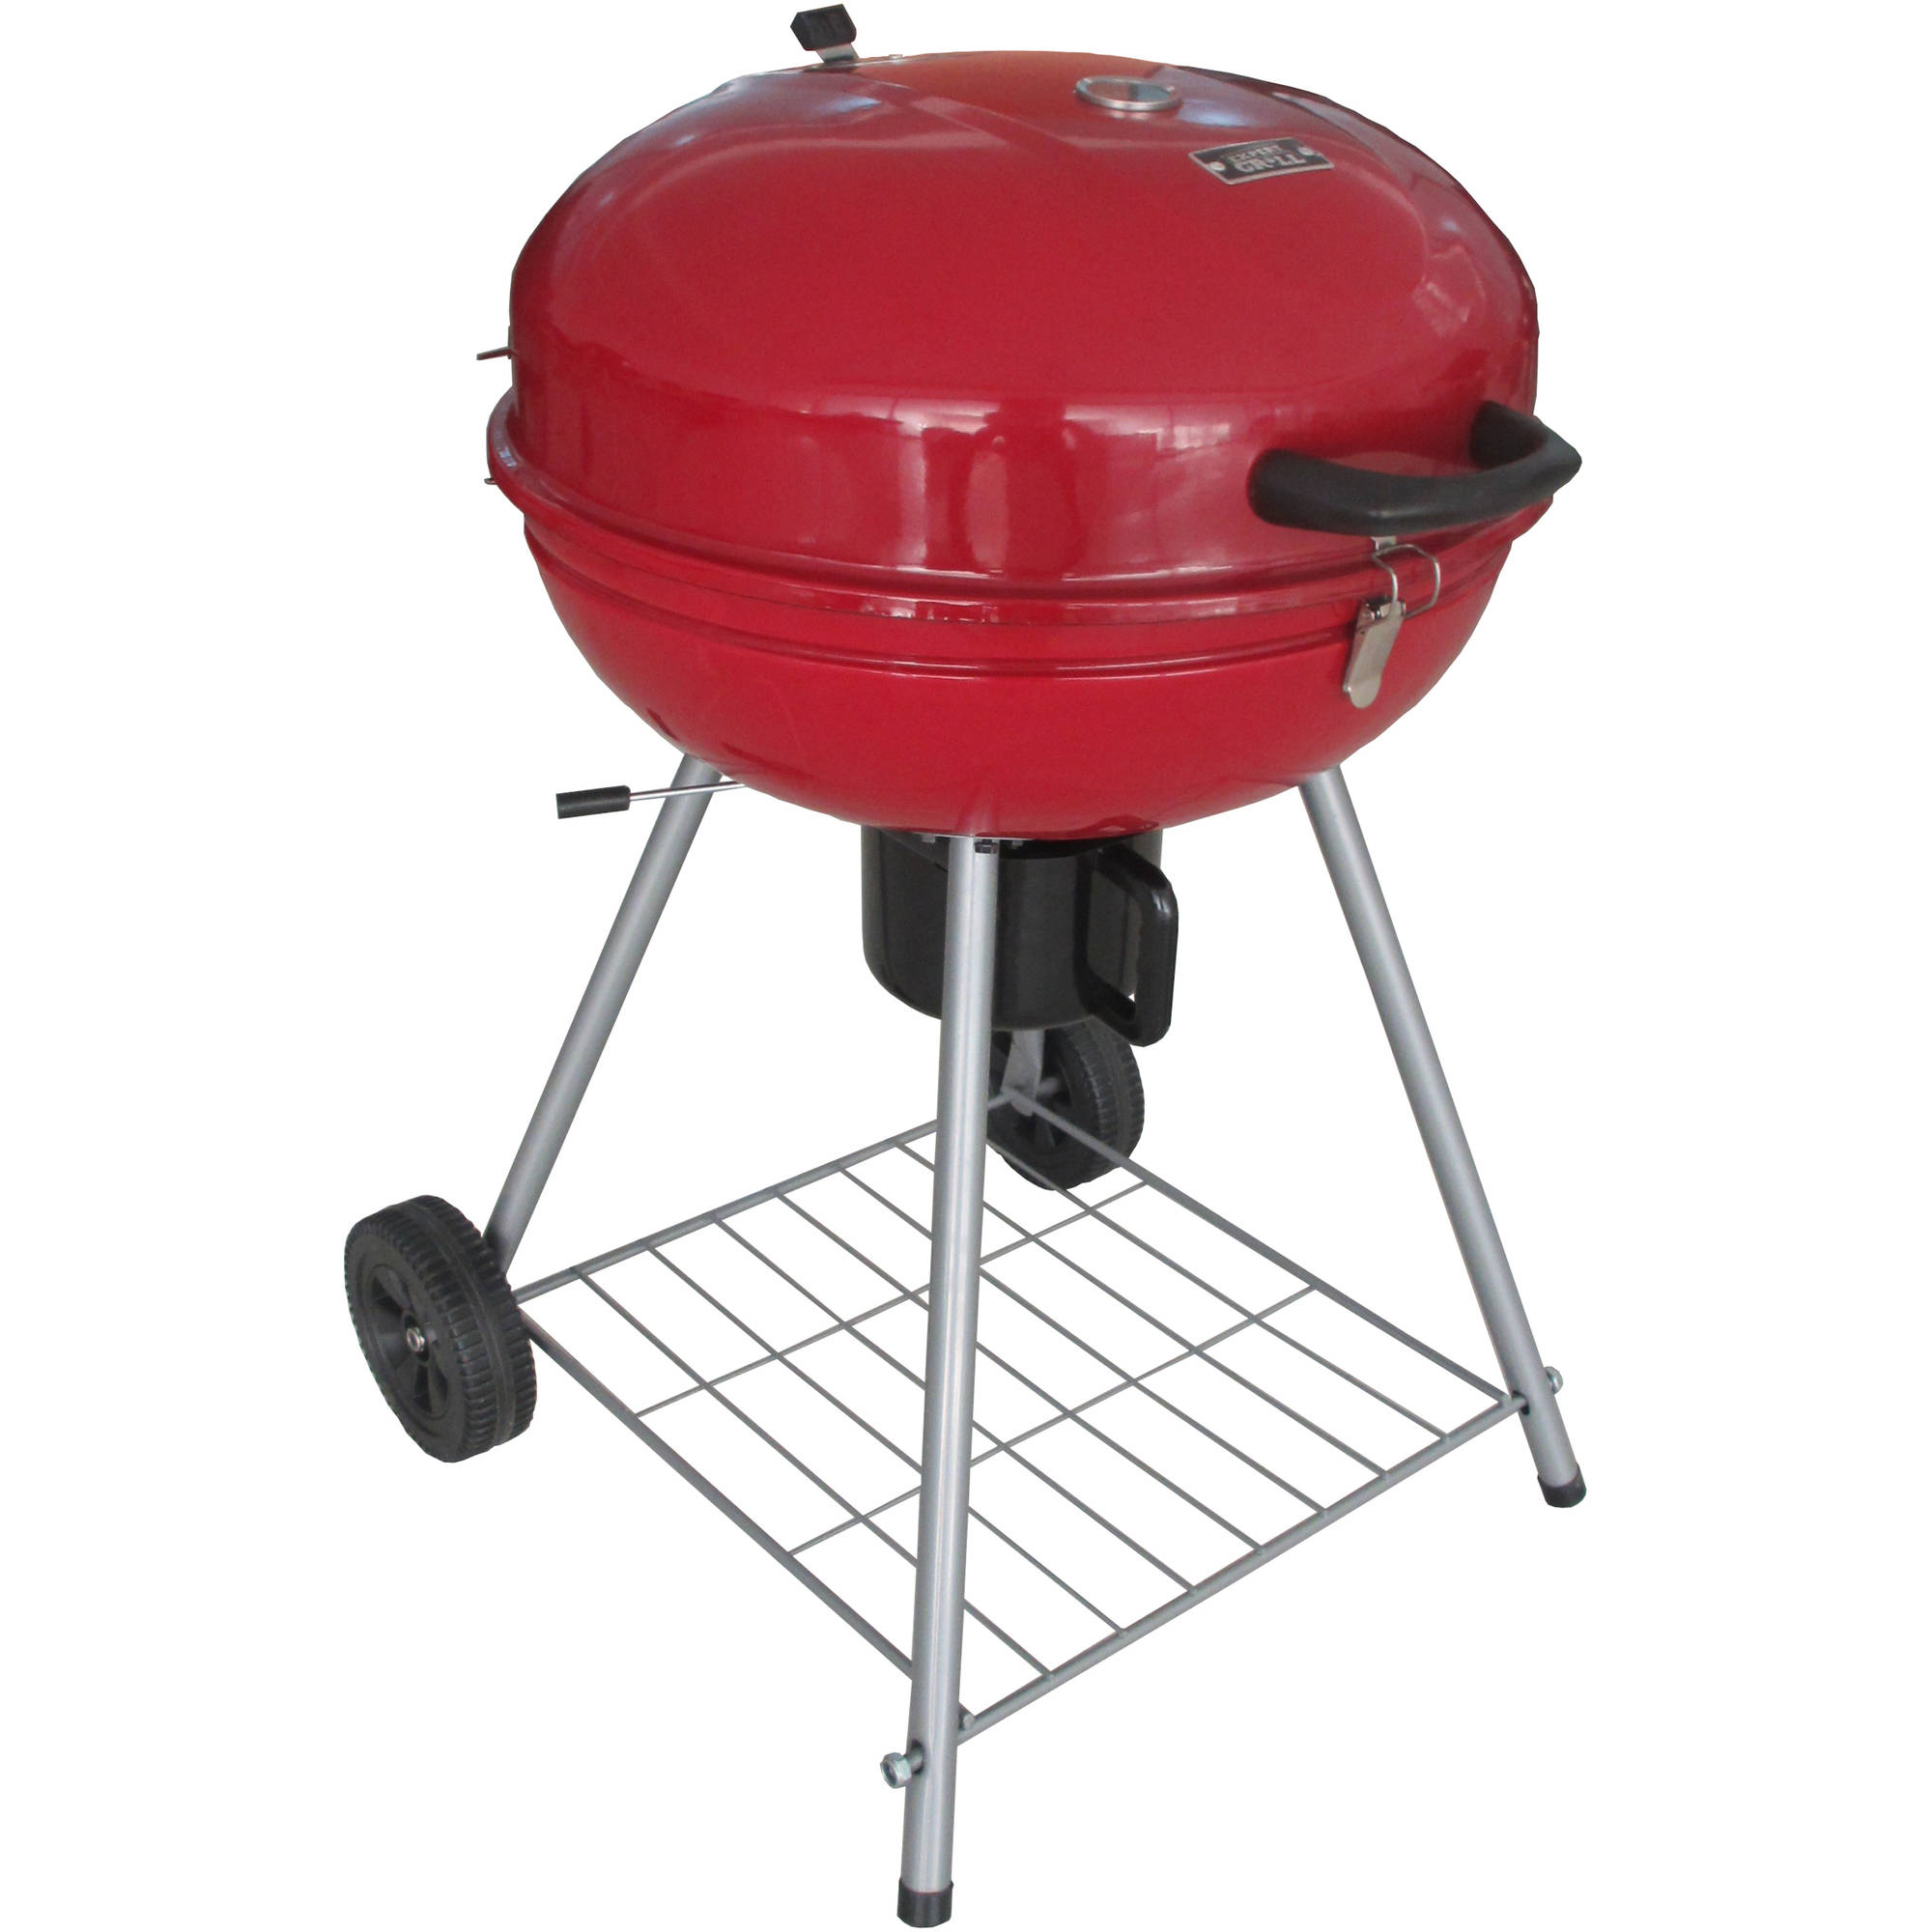 "Expert Grill 22.5"" Kettle Charcoal Grill, Red"